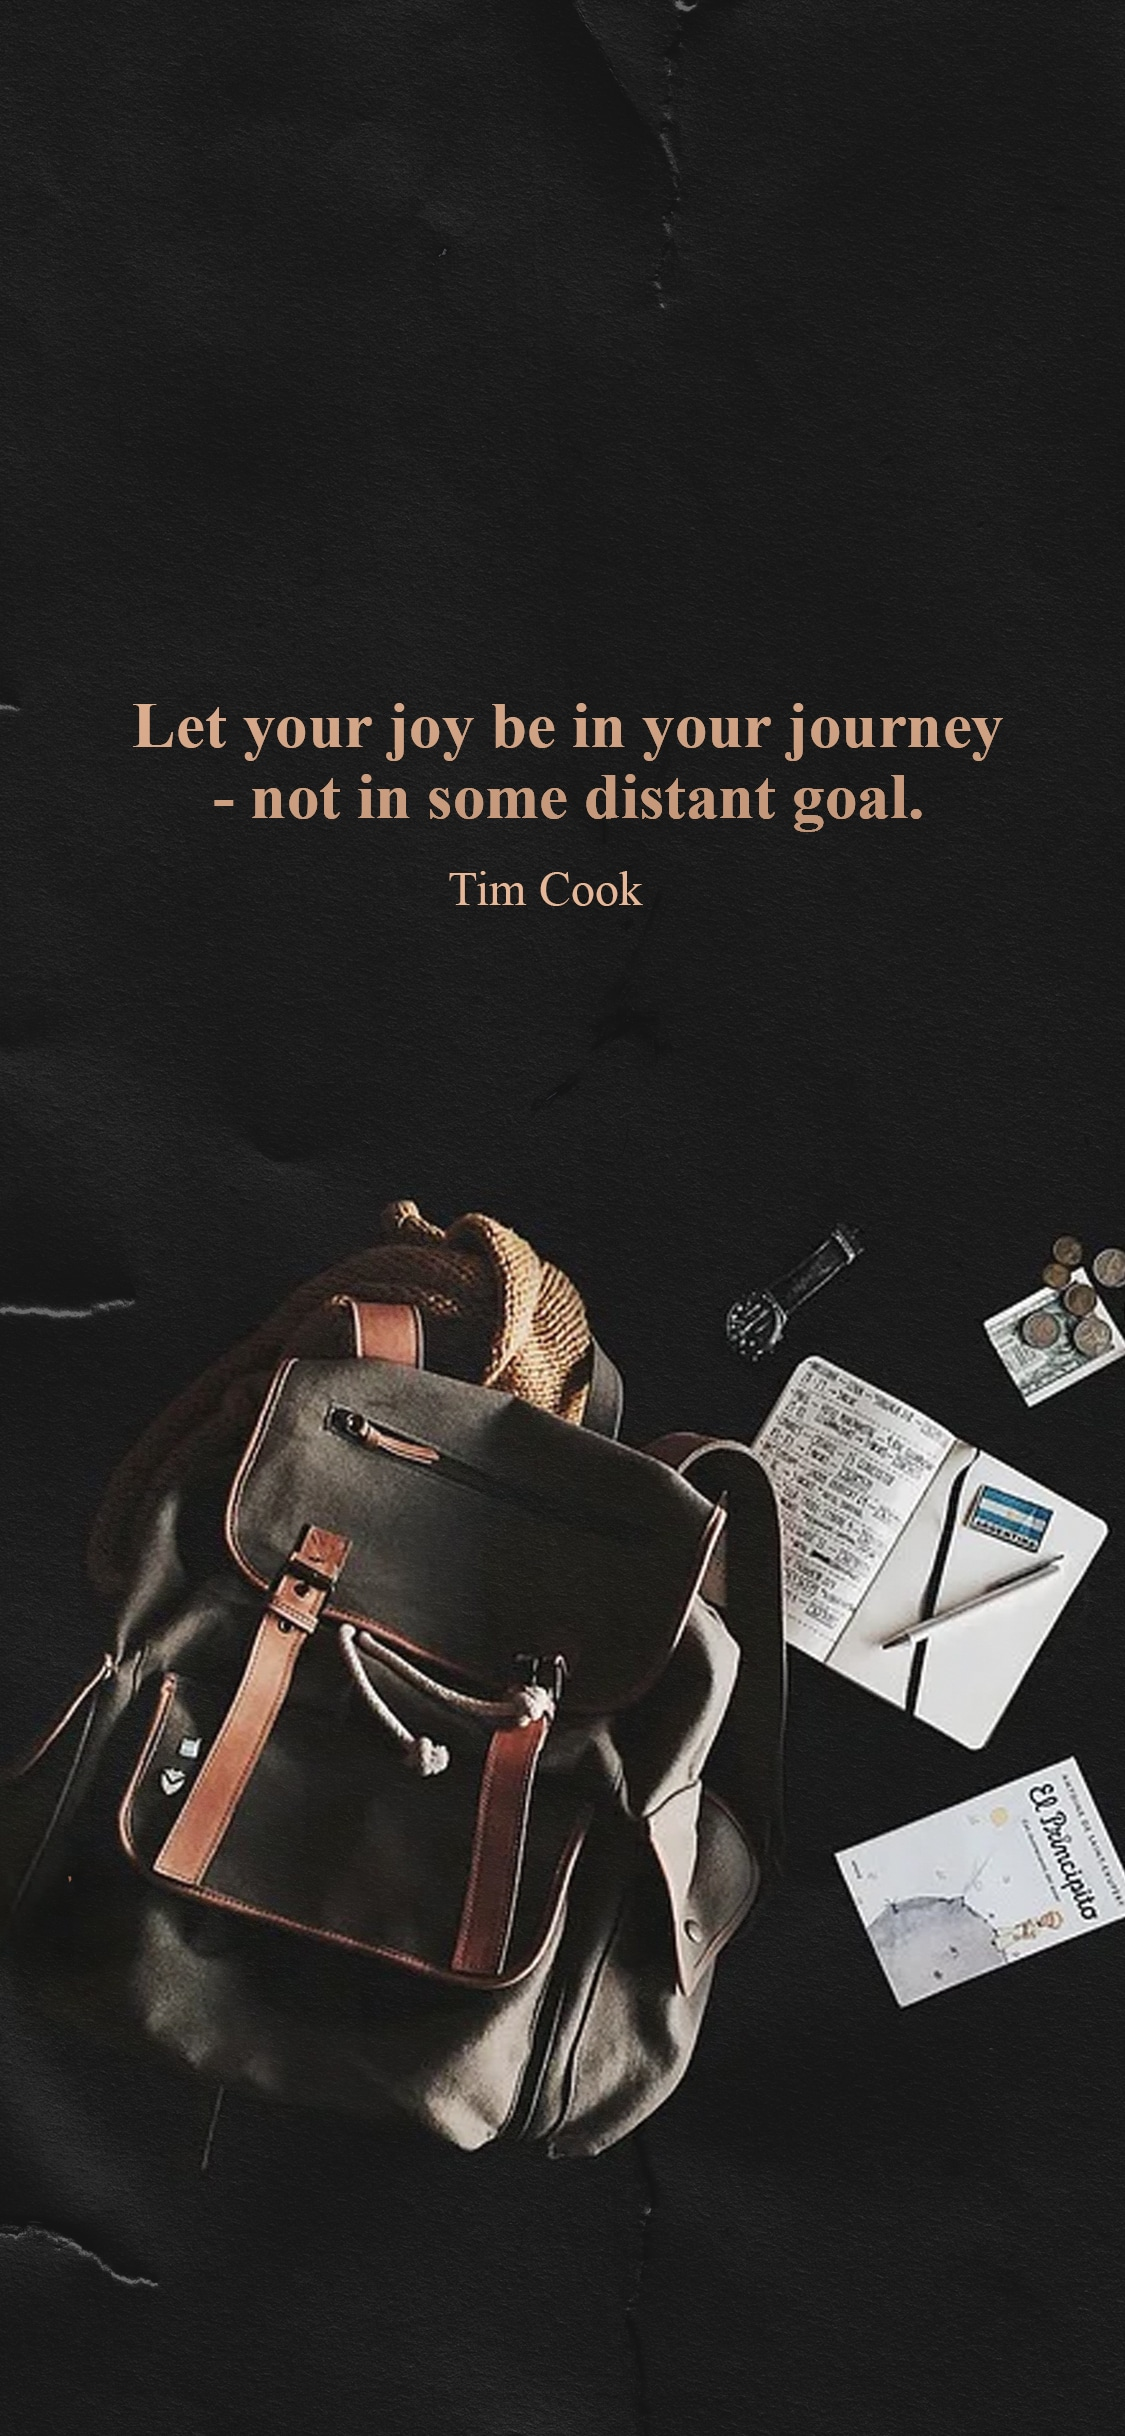 Tim Cook quote 4